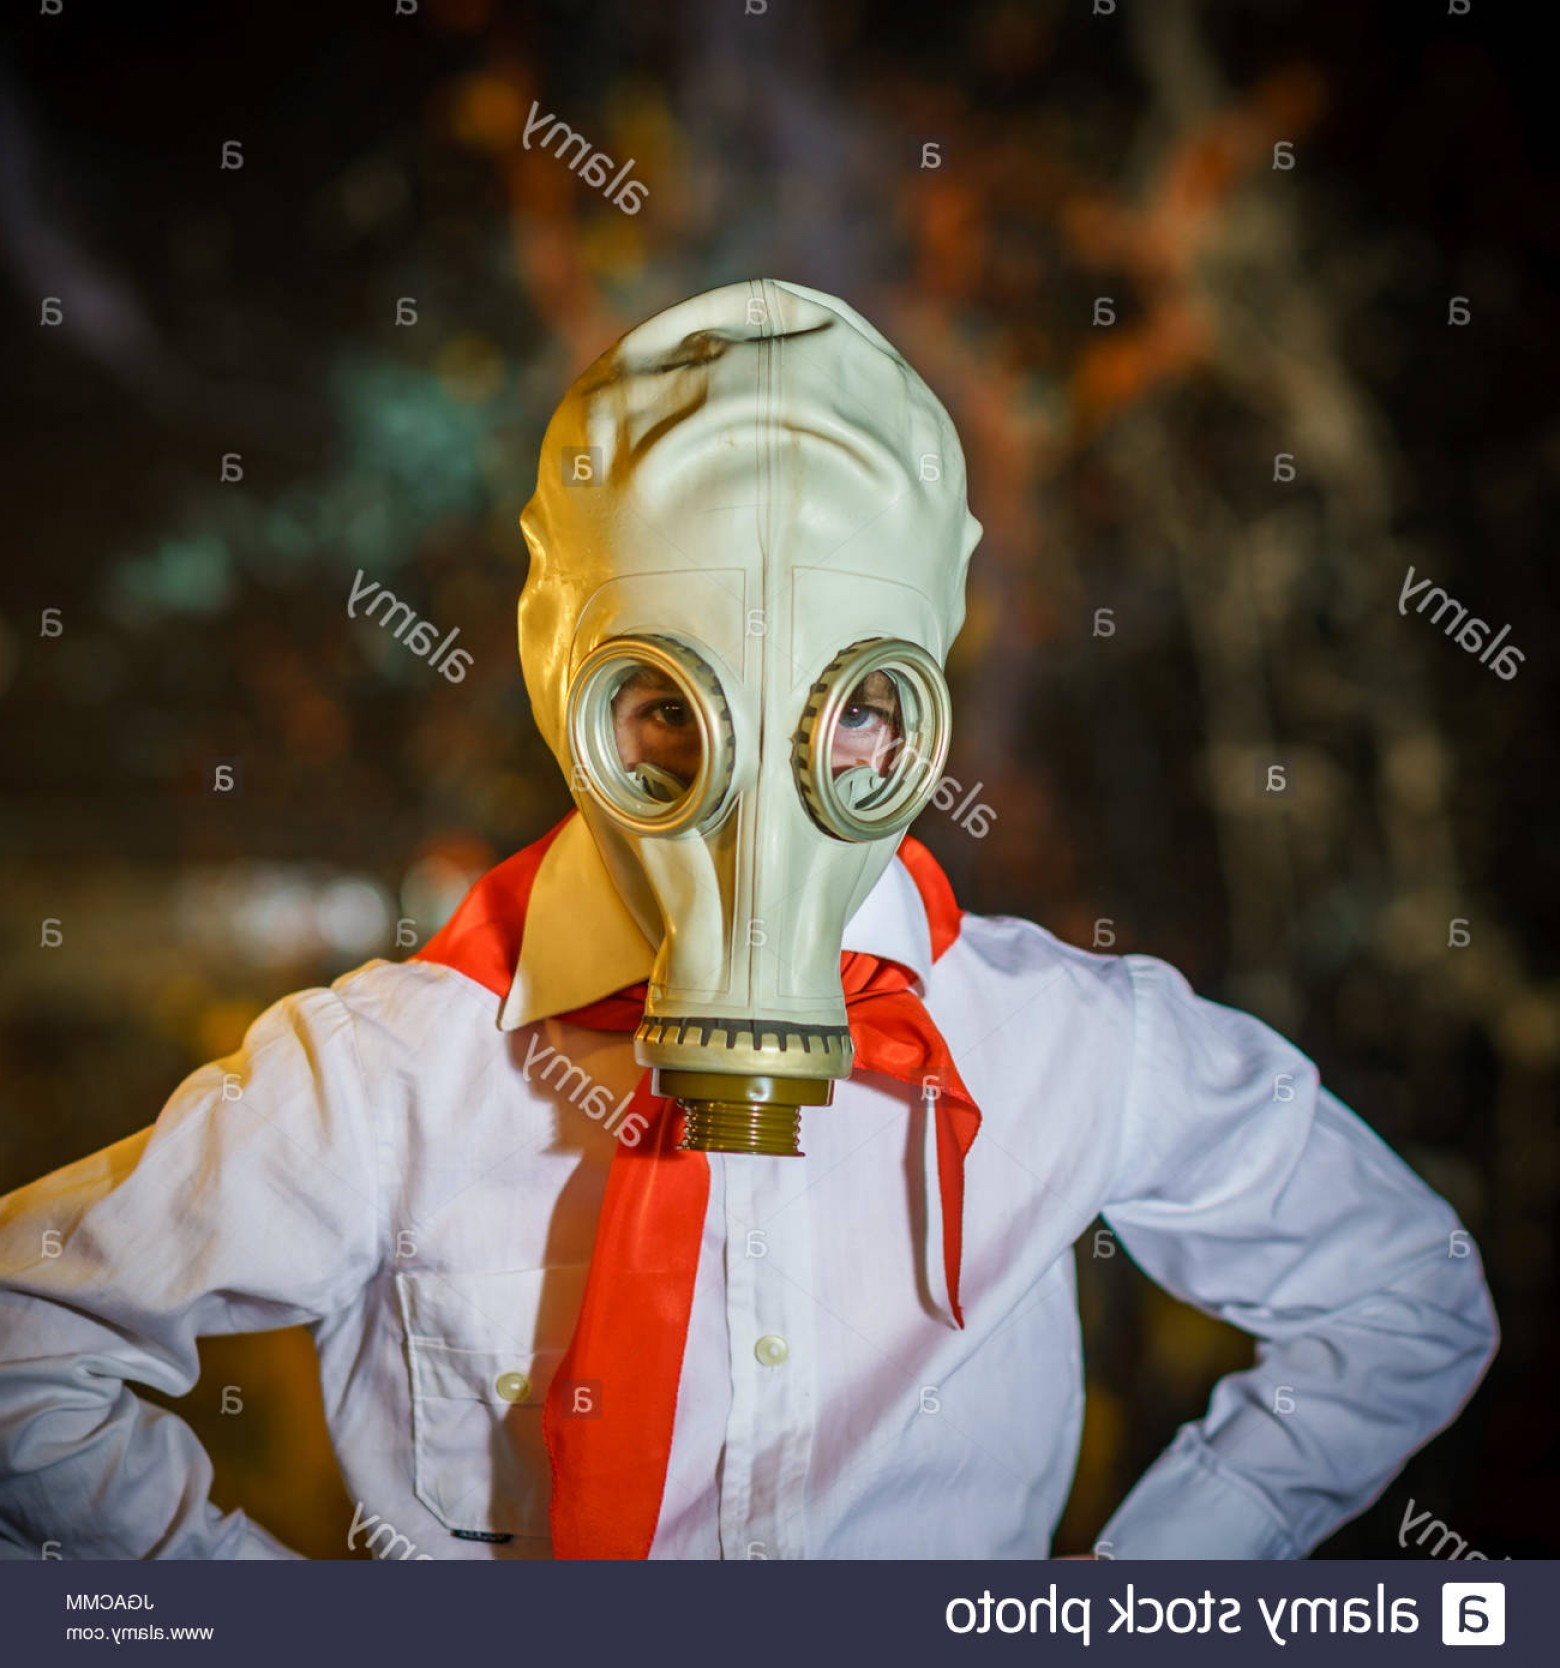 Gas Mask Suit And Tie Vector: Stock Photo Young Soviet Pioneer Dressed In Red Tie And Gas Mask Studio